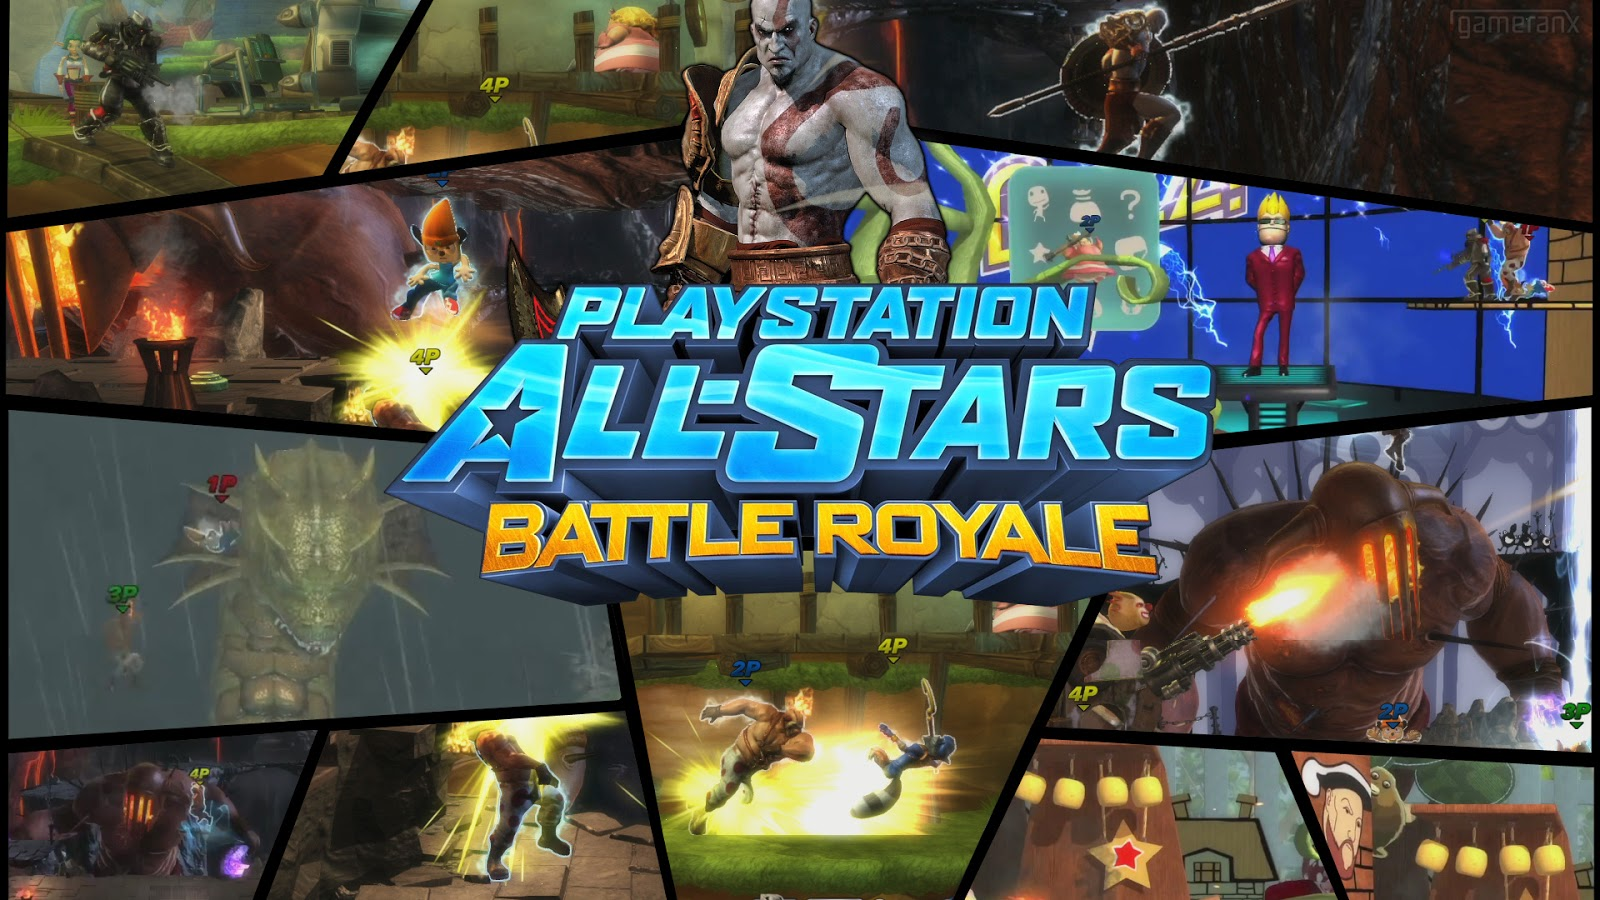 http://2.bp.blogspot.com/-Vzxb7xIQGGI/UJIHFXEH3-I/AAAAAAAACZs/gd2tbsGX16M/s1600/PlayStation-All-Stars-Battle-Royale.jpg